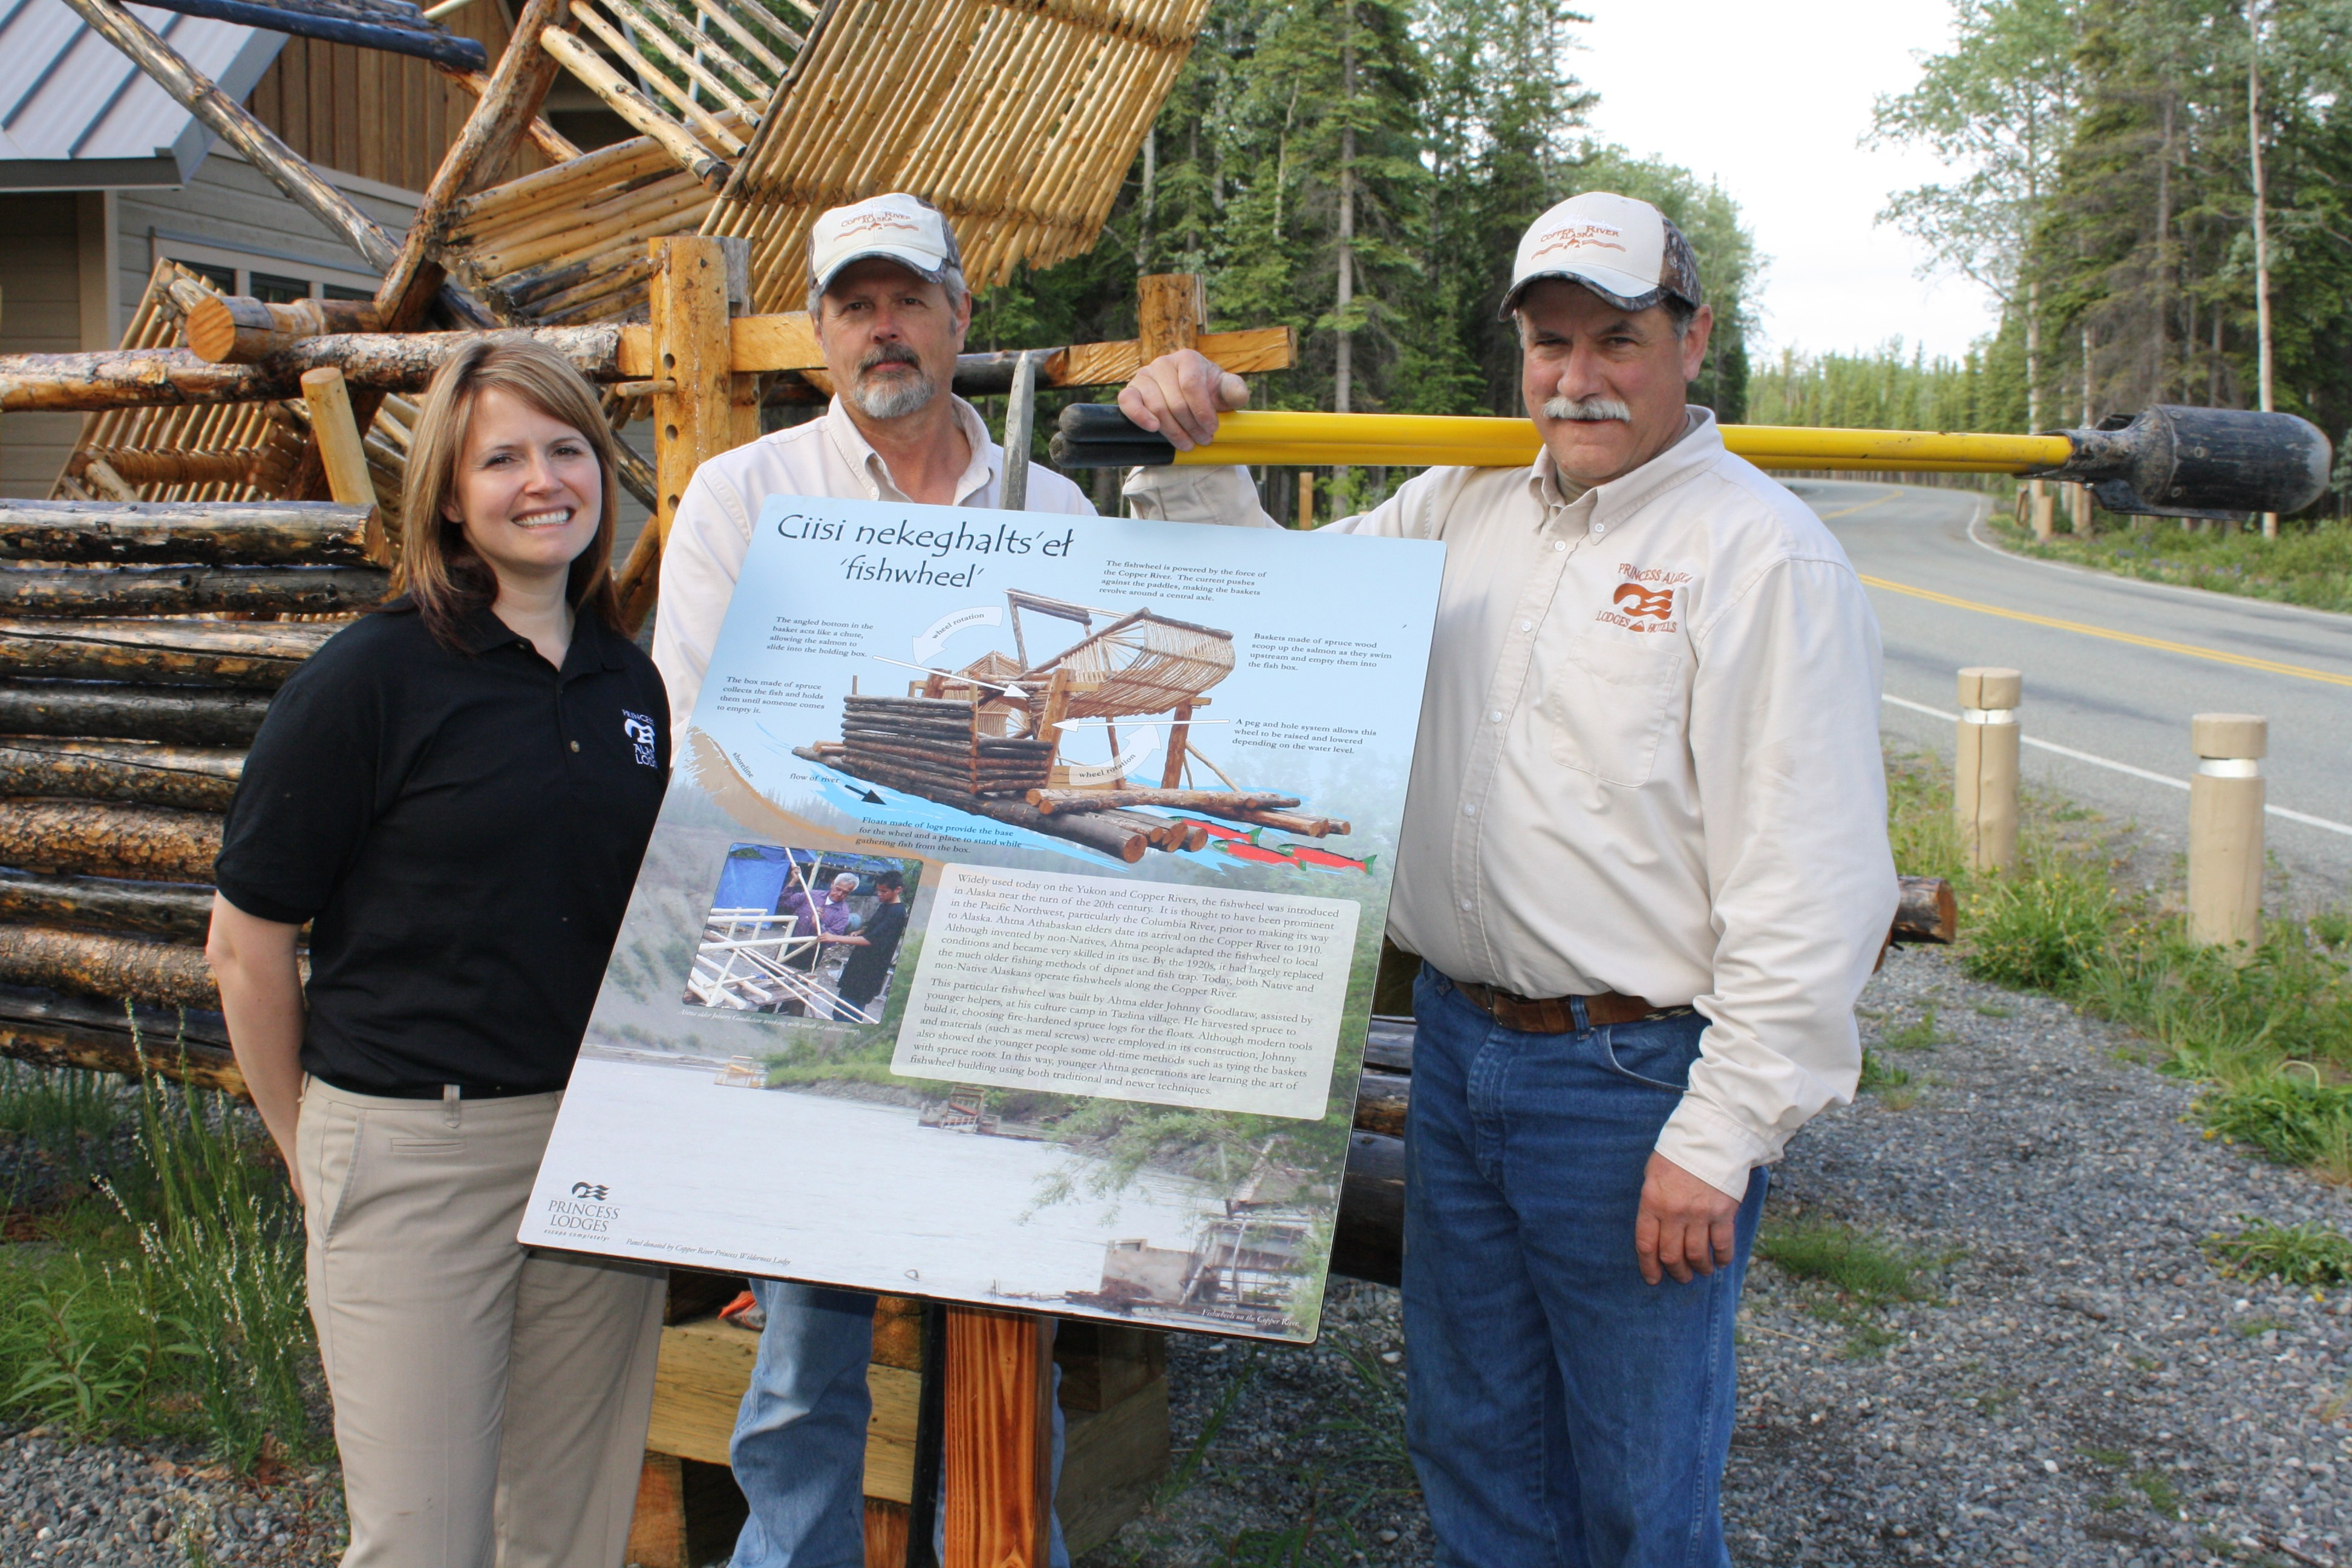 Tracy Smith, Copper River Princess Wilderness Lodge general manager, along with Gregory Sports and Bob Chase of the lodge's maintenance team in front of the new sign and fish wheel.